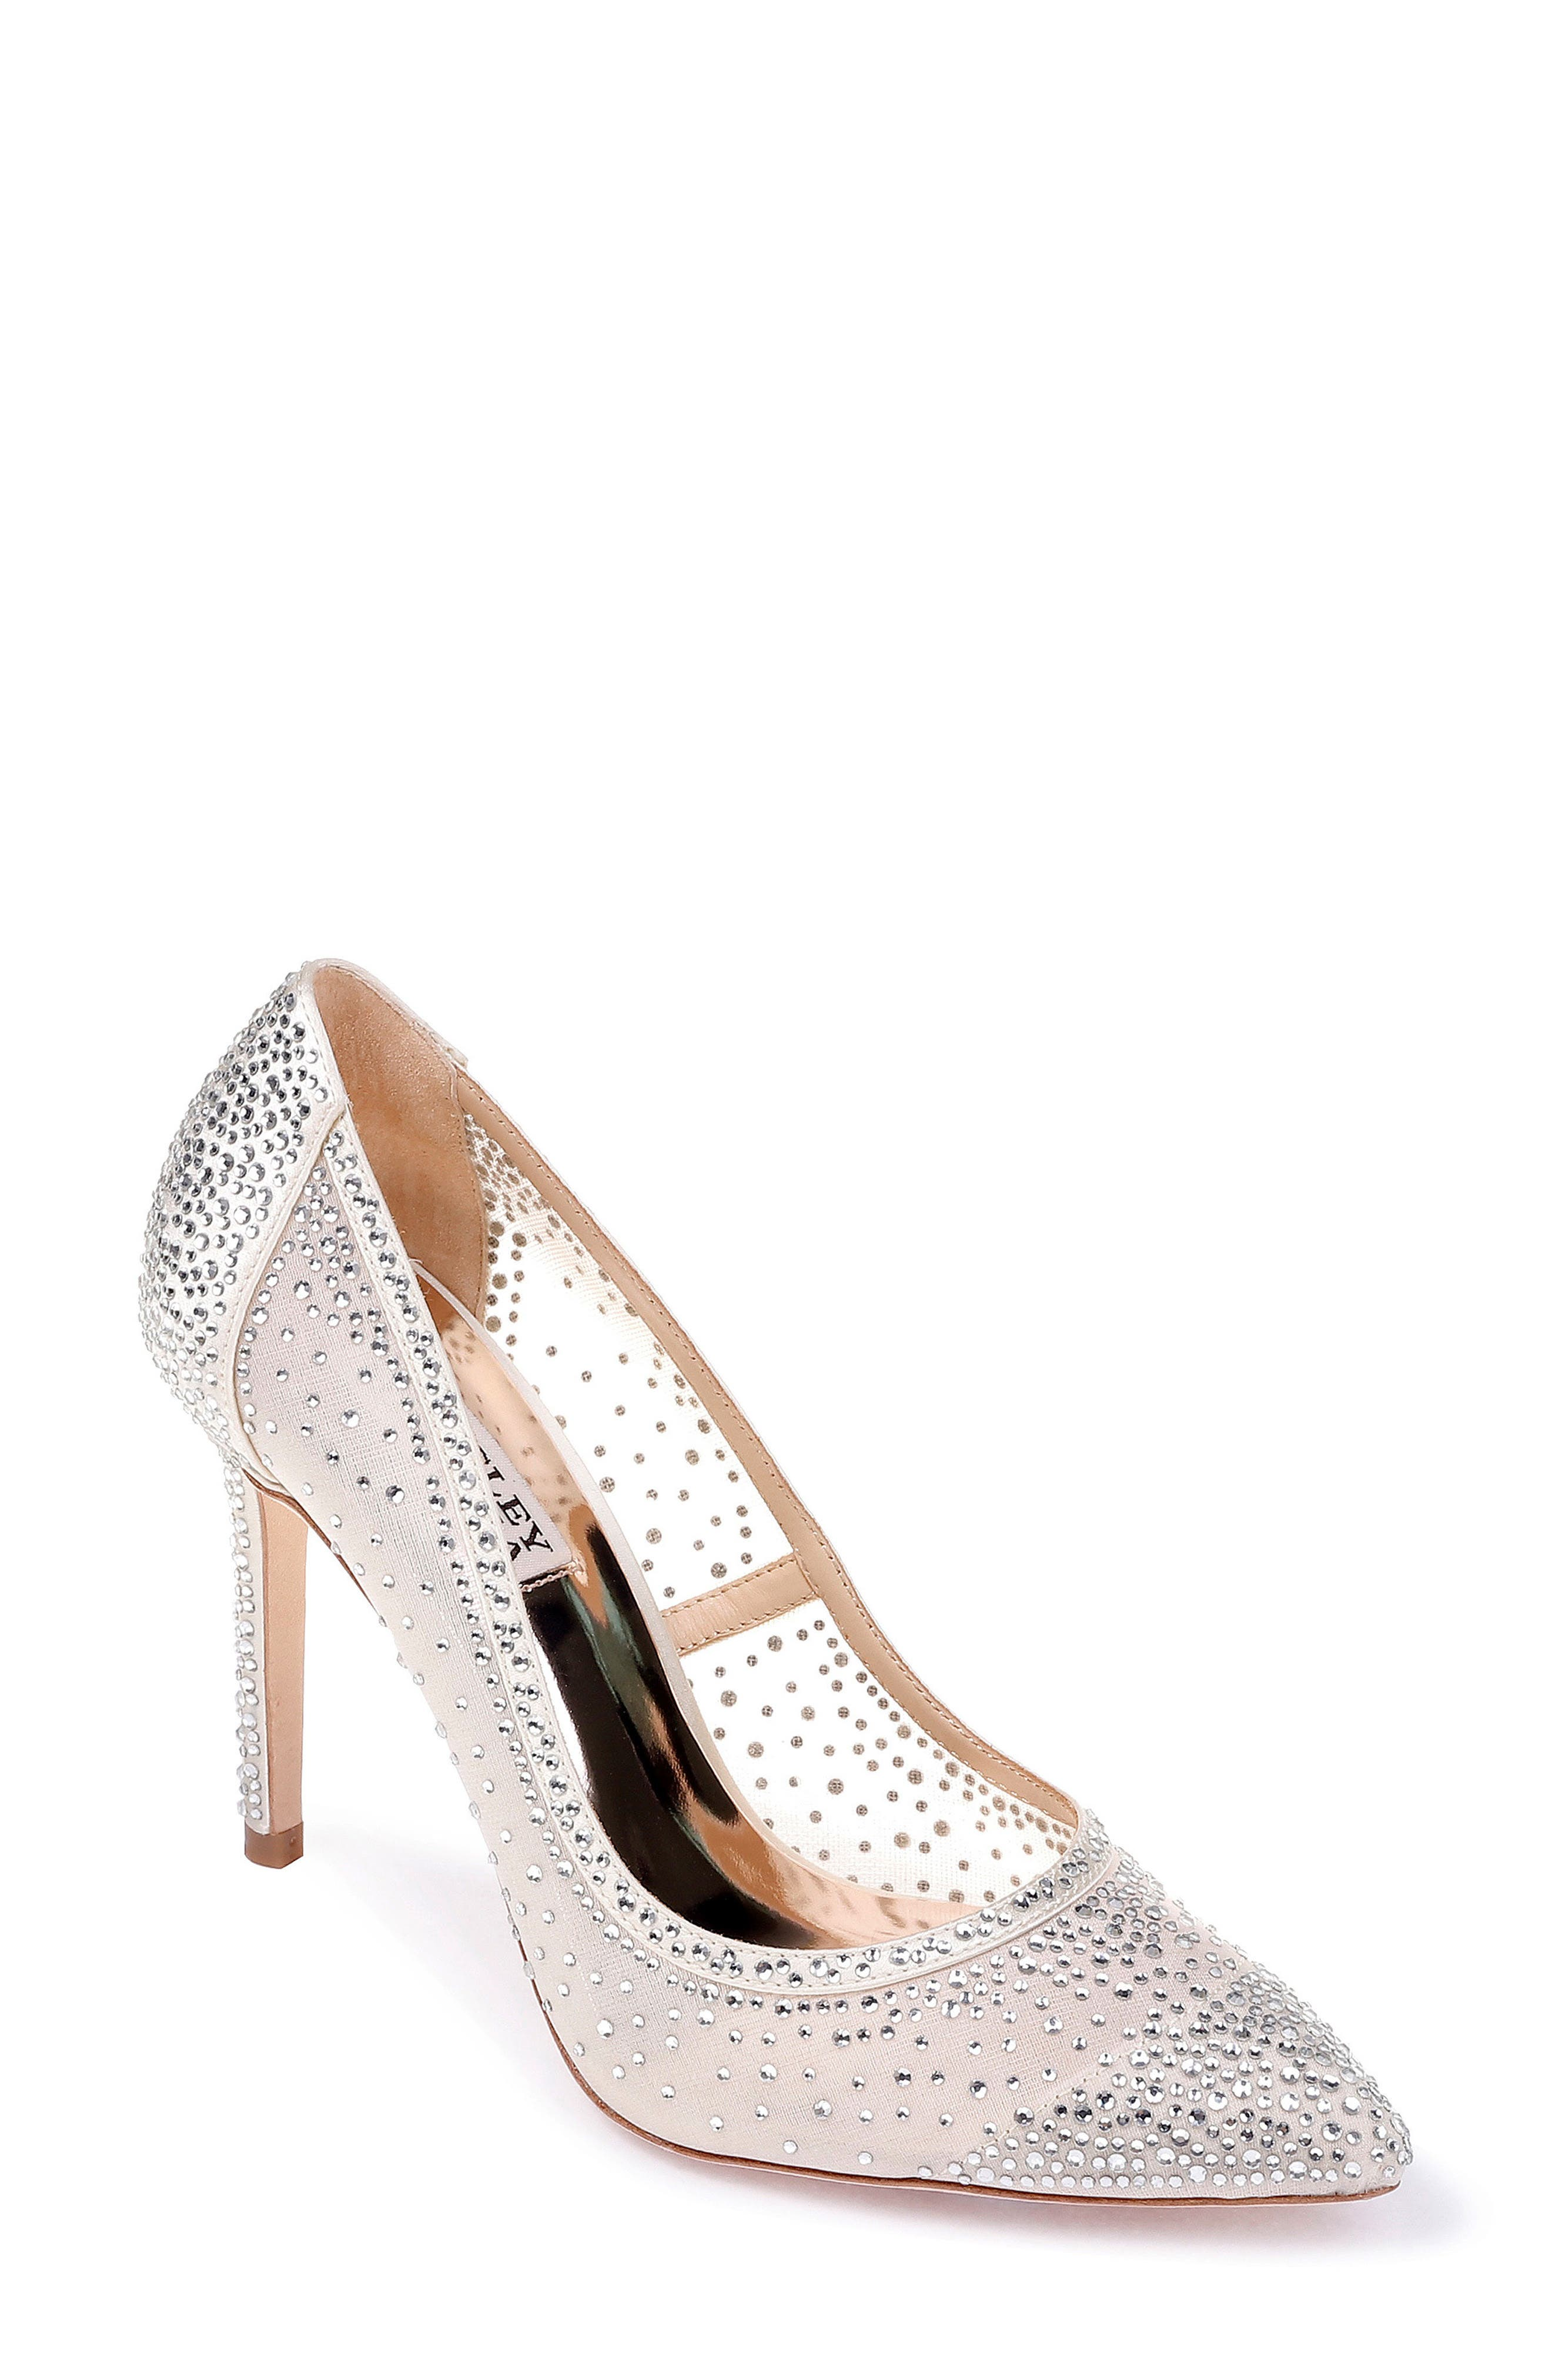 Weslee Pointy Toe Pump,                             Main thumbnail 1, color,                             IVORY SATIN